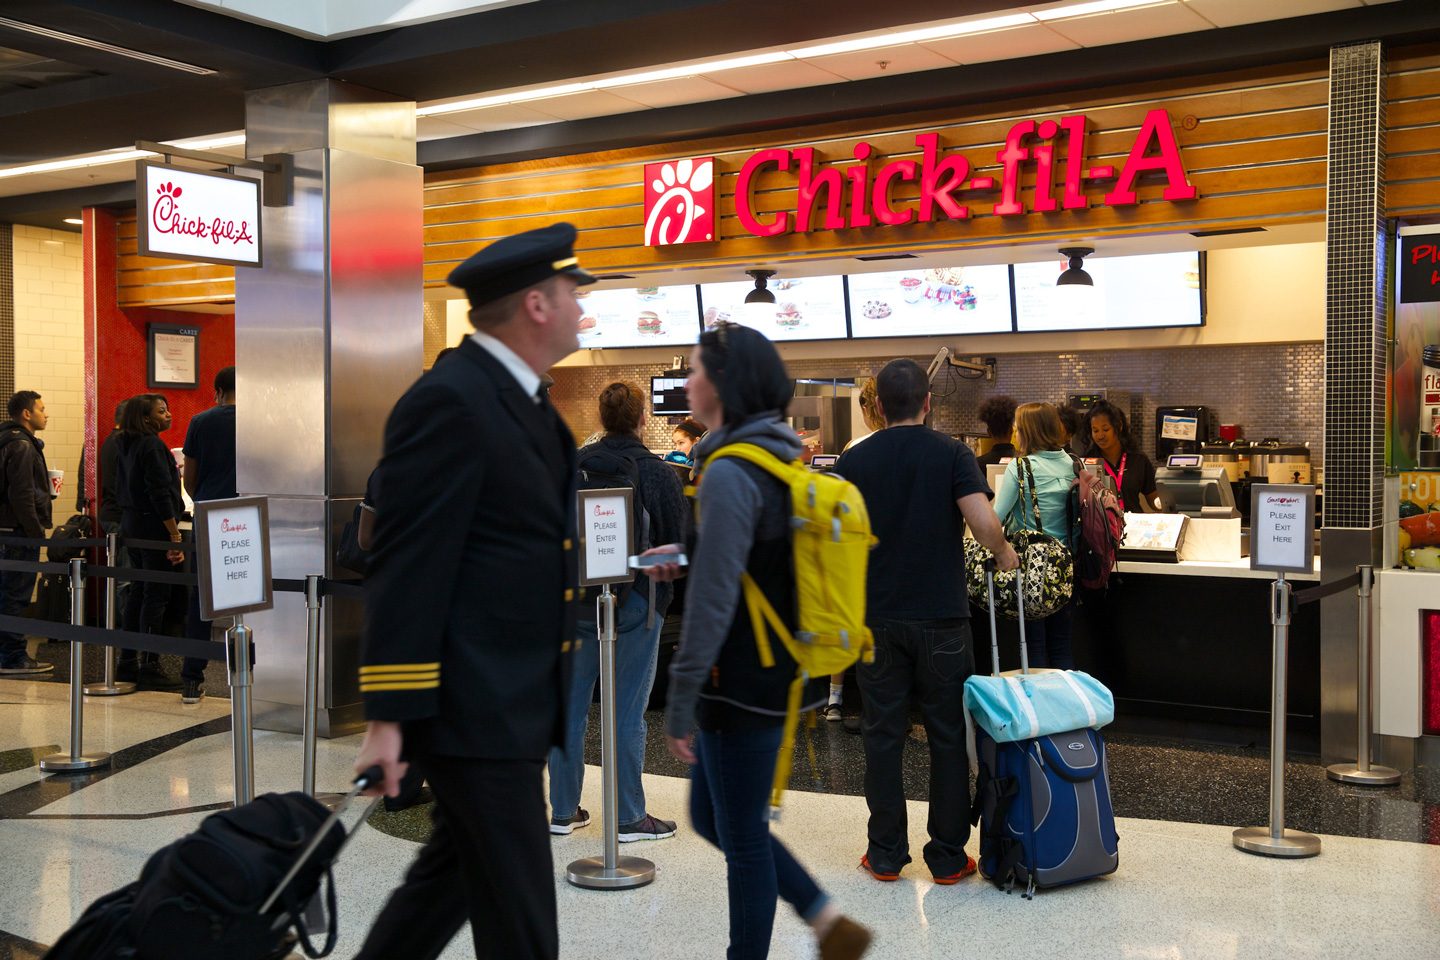 Your Essential Guide to Every Single Airport Chick-fil-A | Chick-fil-A